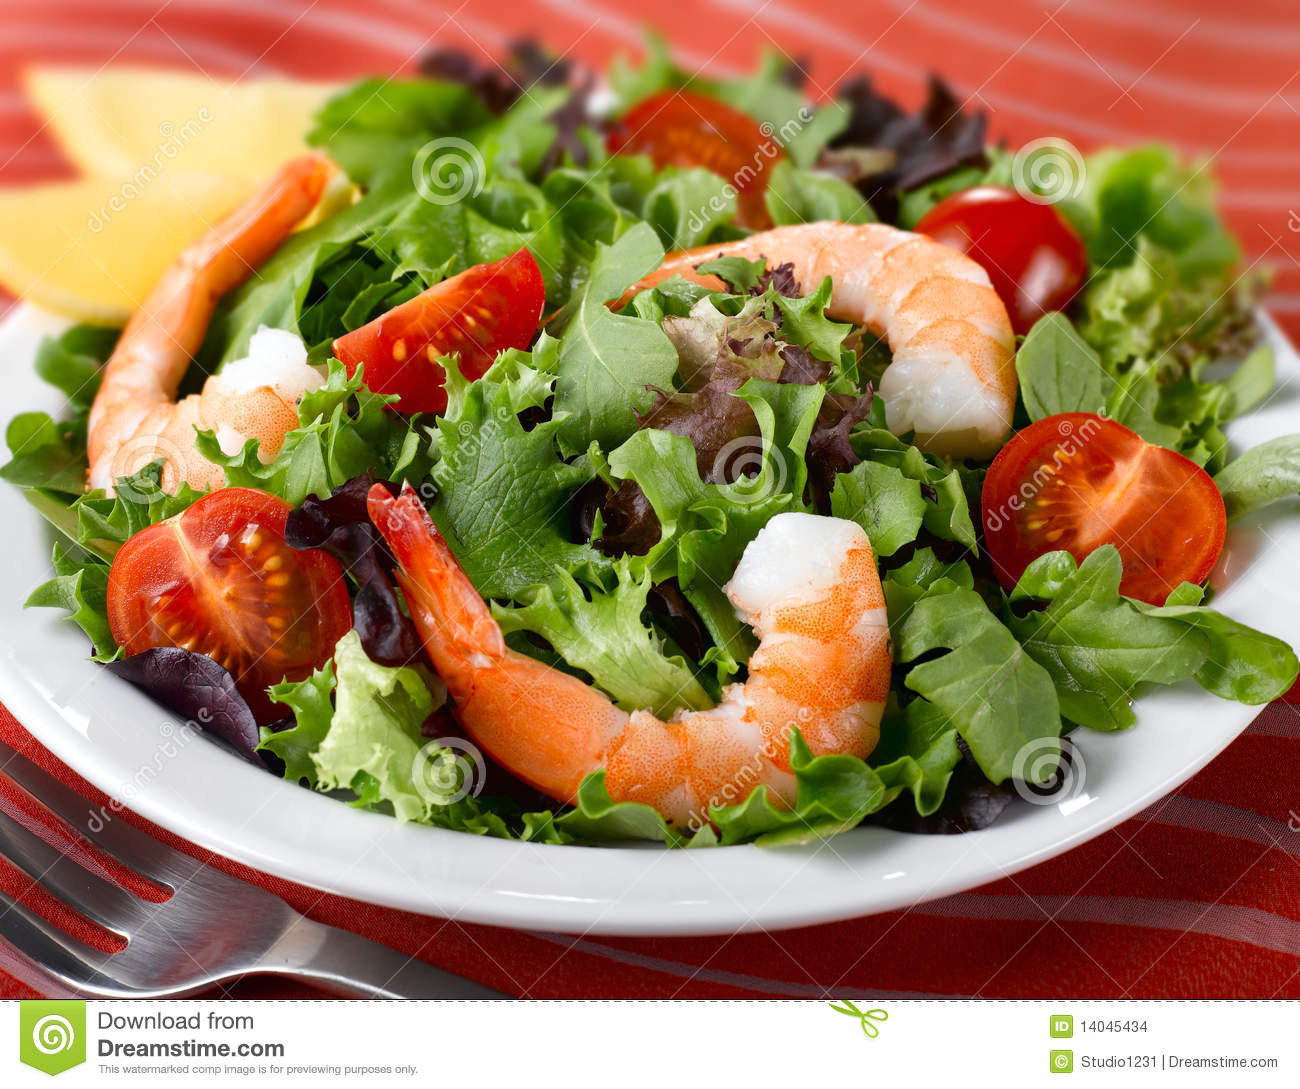 Fresh Leafy Green Salad with Jumbo Shrimp and Tomatoes.